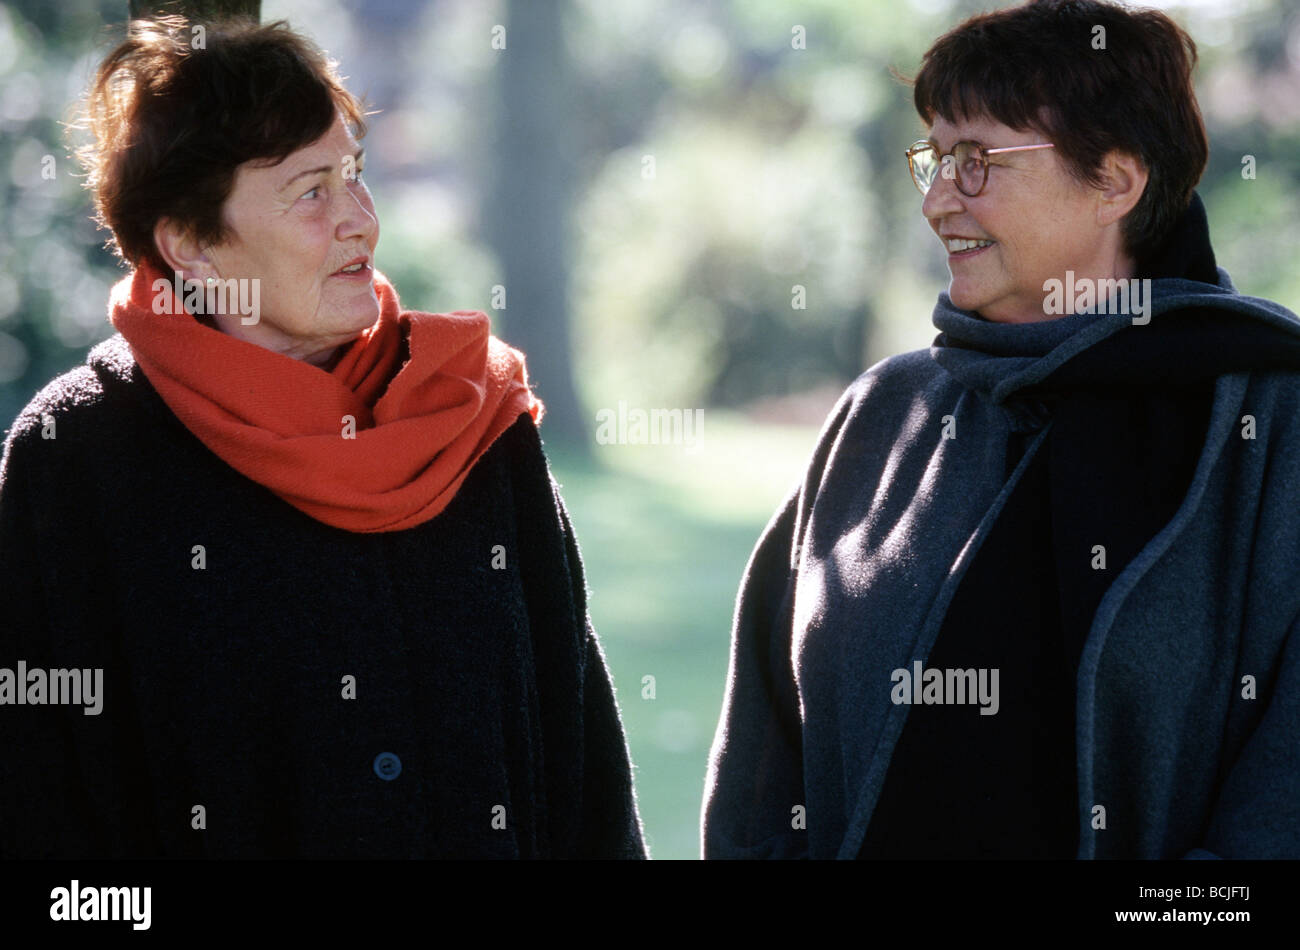 Two od friends chatting outside with each other - Stock Image